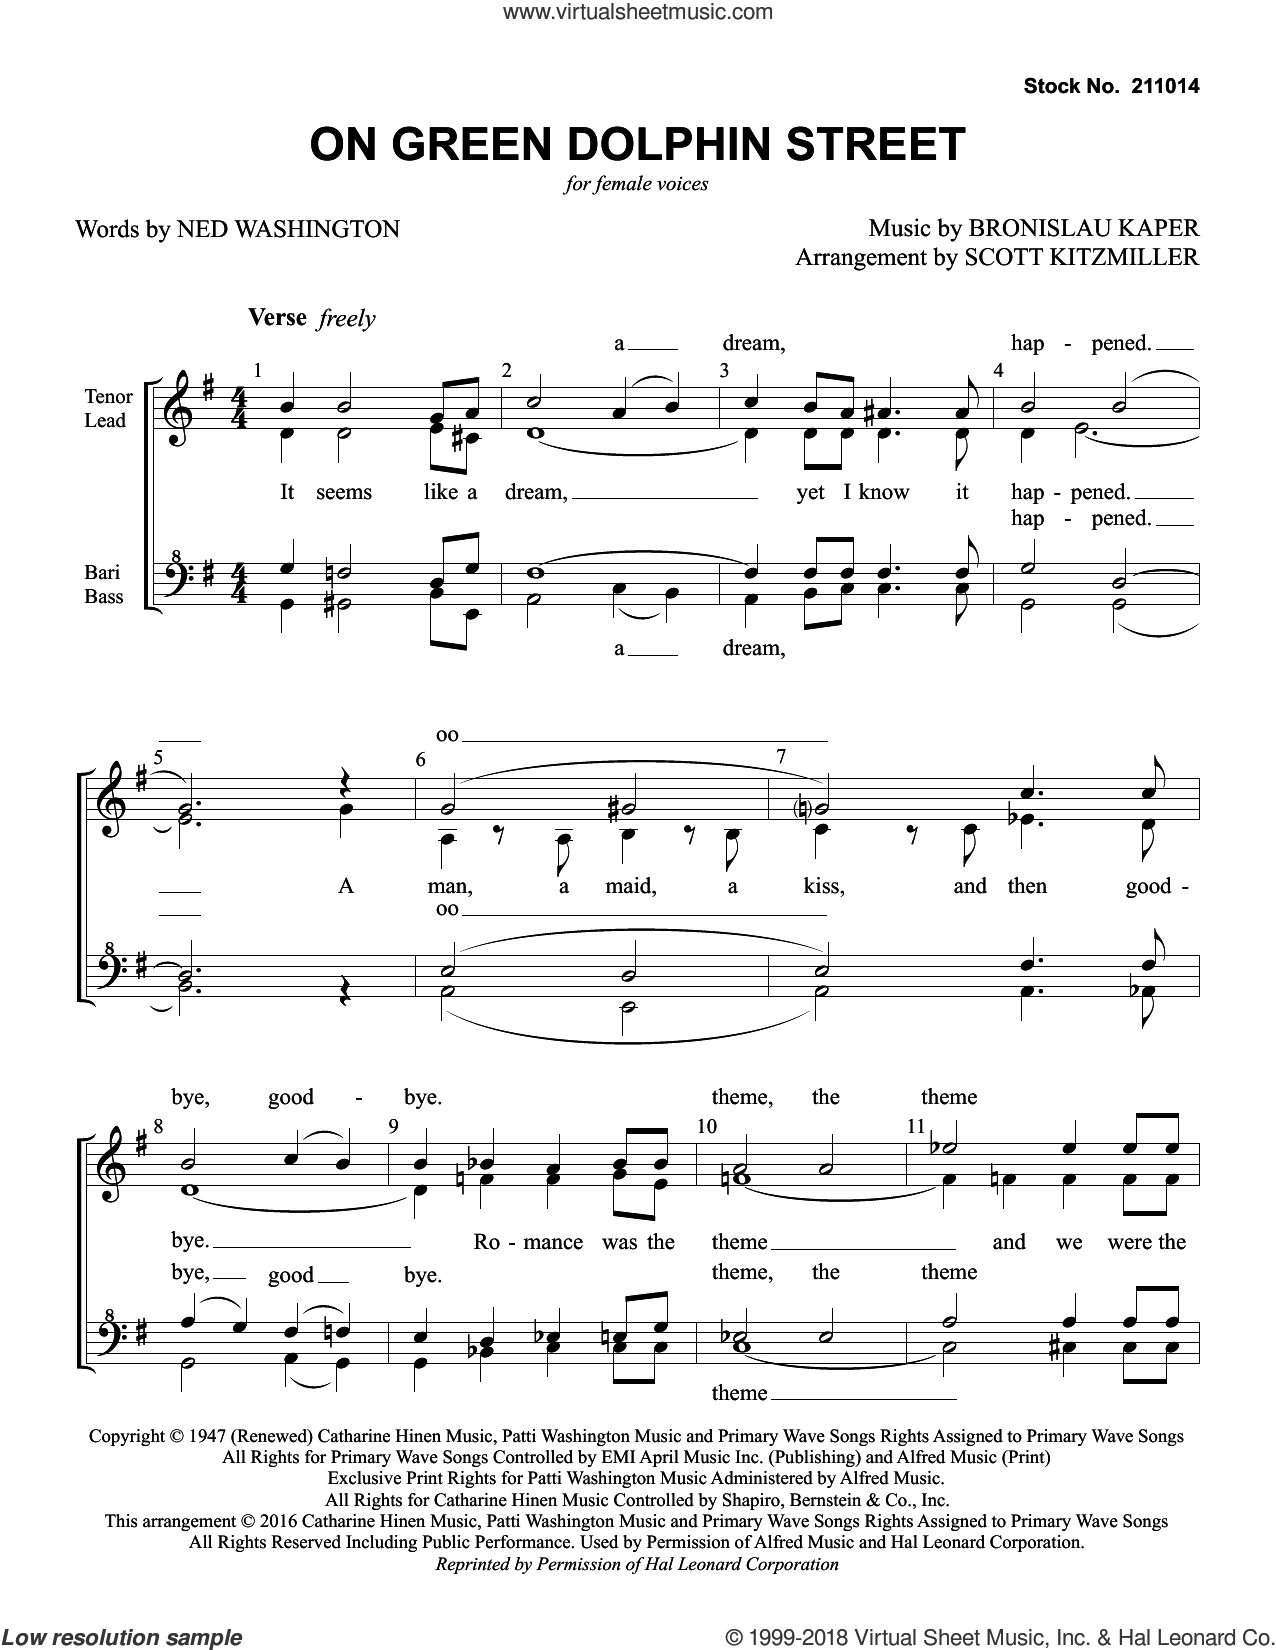 On Green Dolphin Street (arr. Scott Kitzmiller) sheet music for choir (SSAA: soprano, alto) by Jimmy Dorsey Orchestra, Scott Kitzmiller, Bronislau Kaper and Ned Washington, intermediate skill level